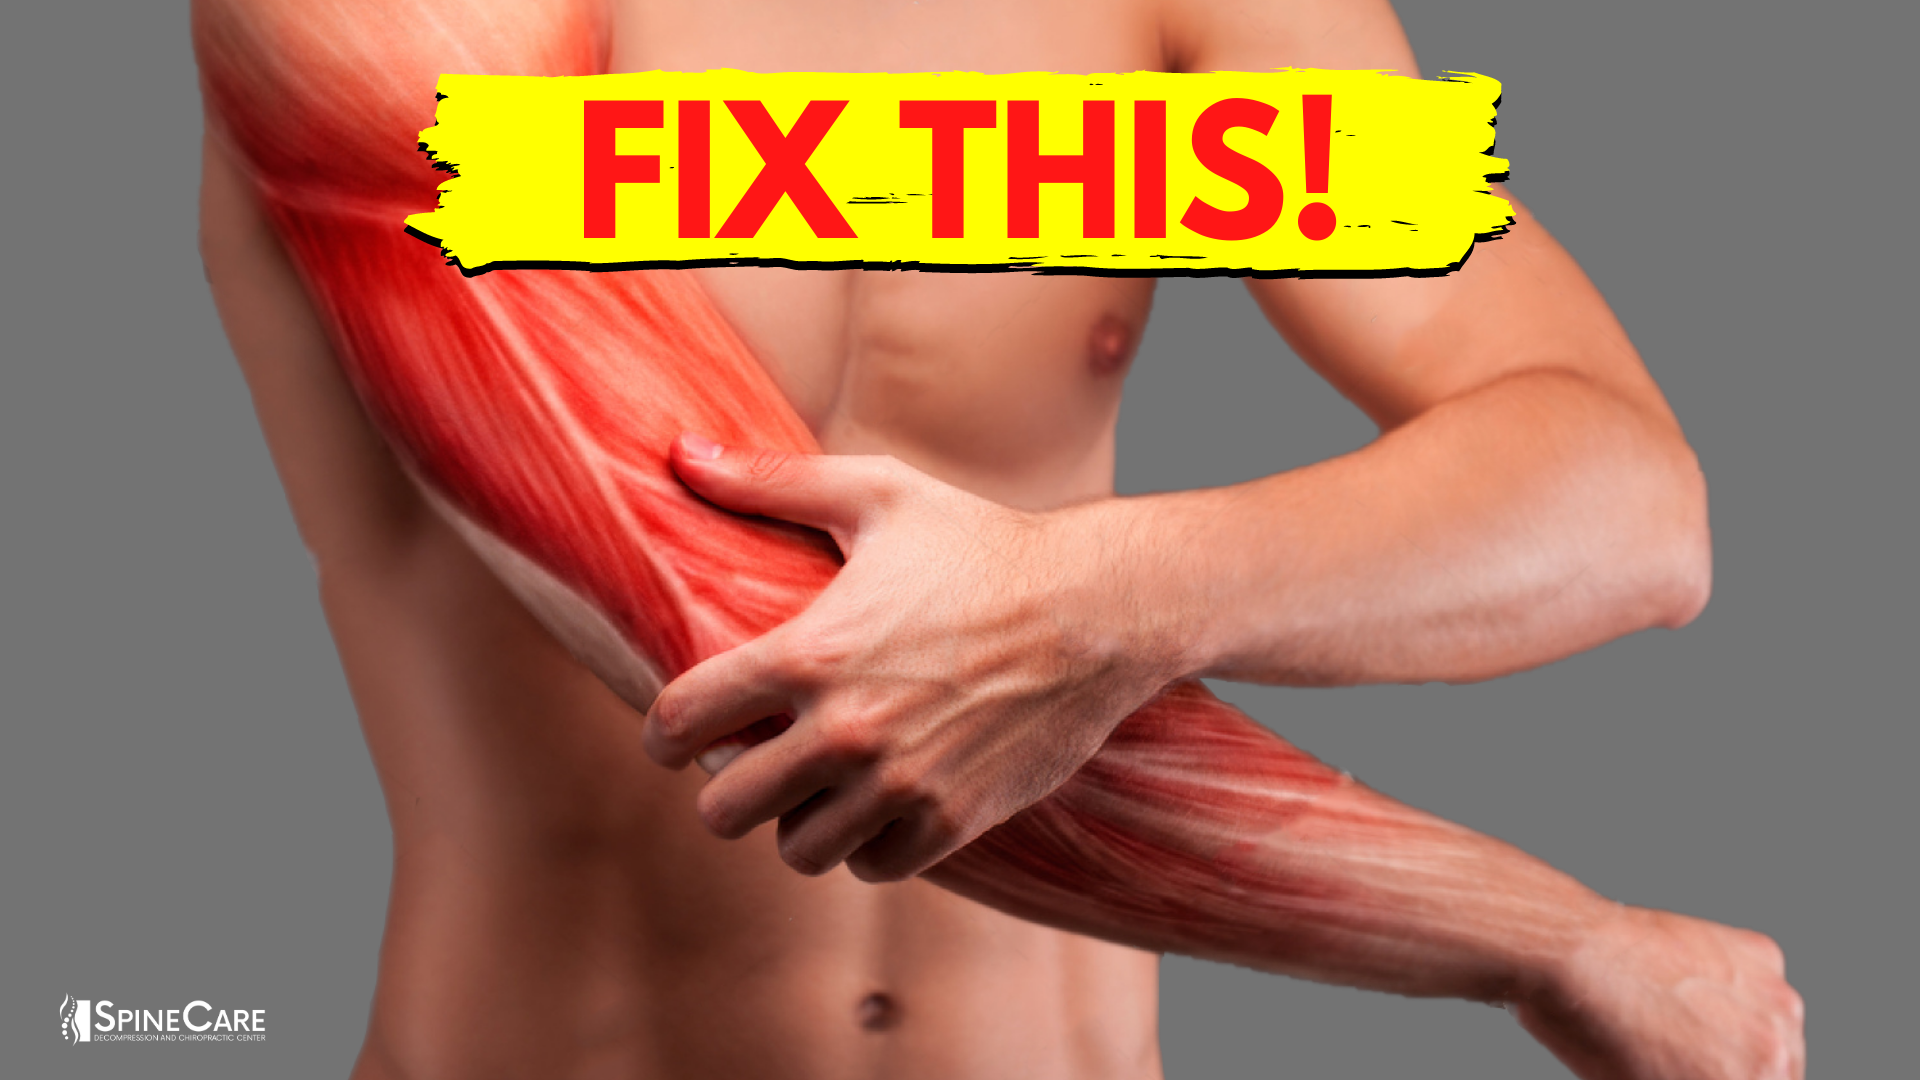 How to Fix Arm Muscle Pain in 30 SECONDS   SpineCare   Saint Joseph, Michigan Chiropractor